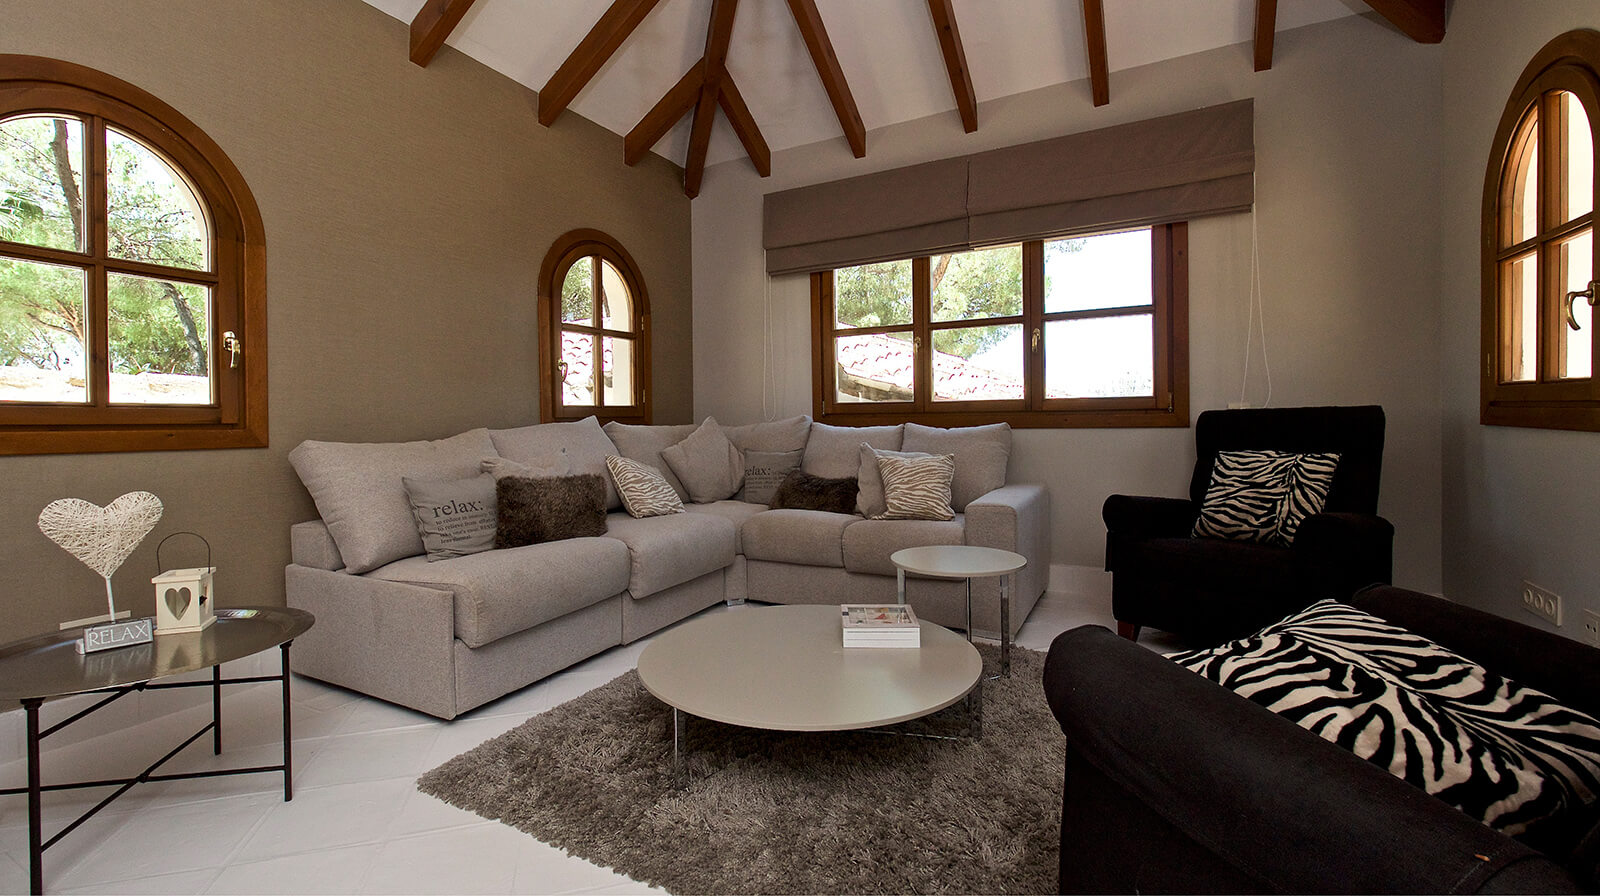 Authentic Andalucian Villa living room sofa